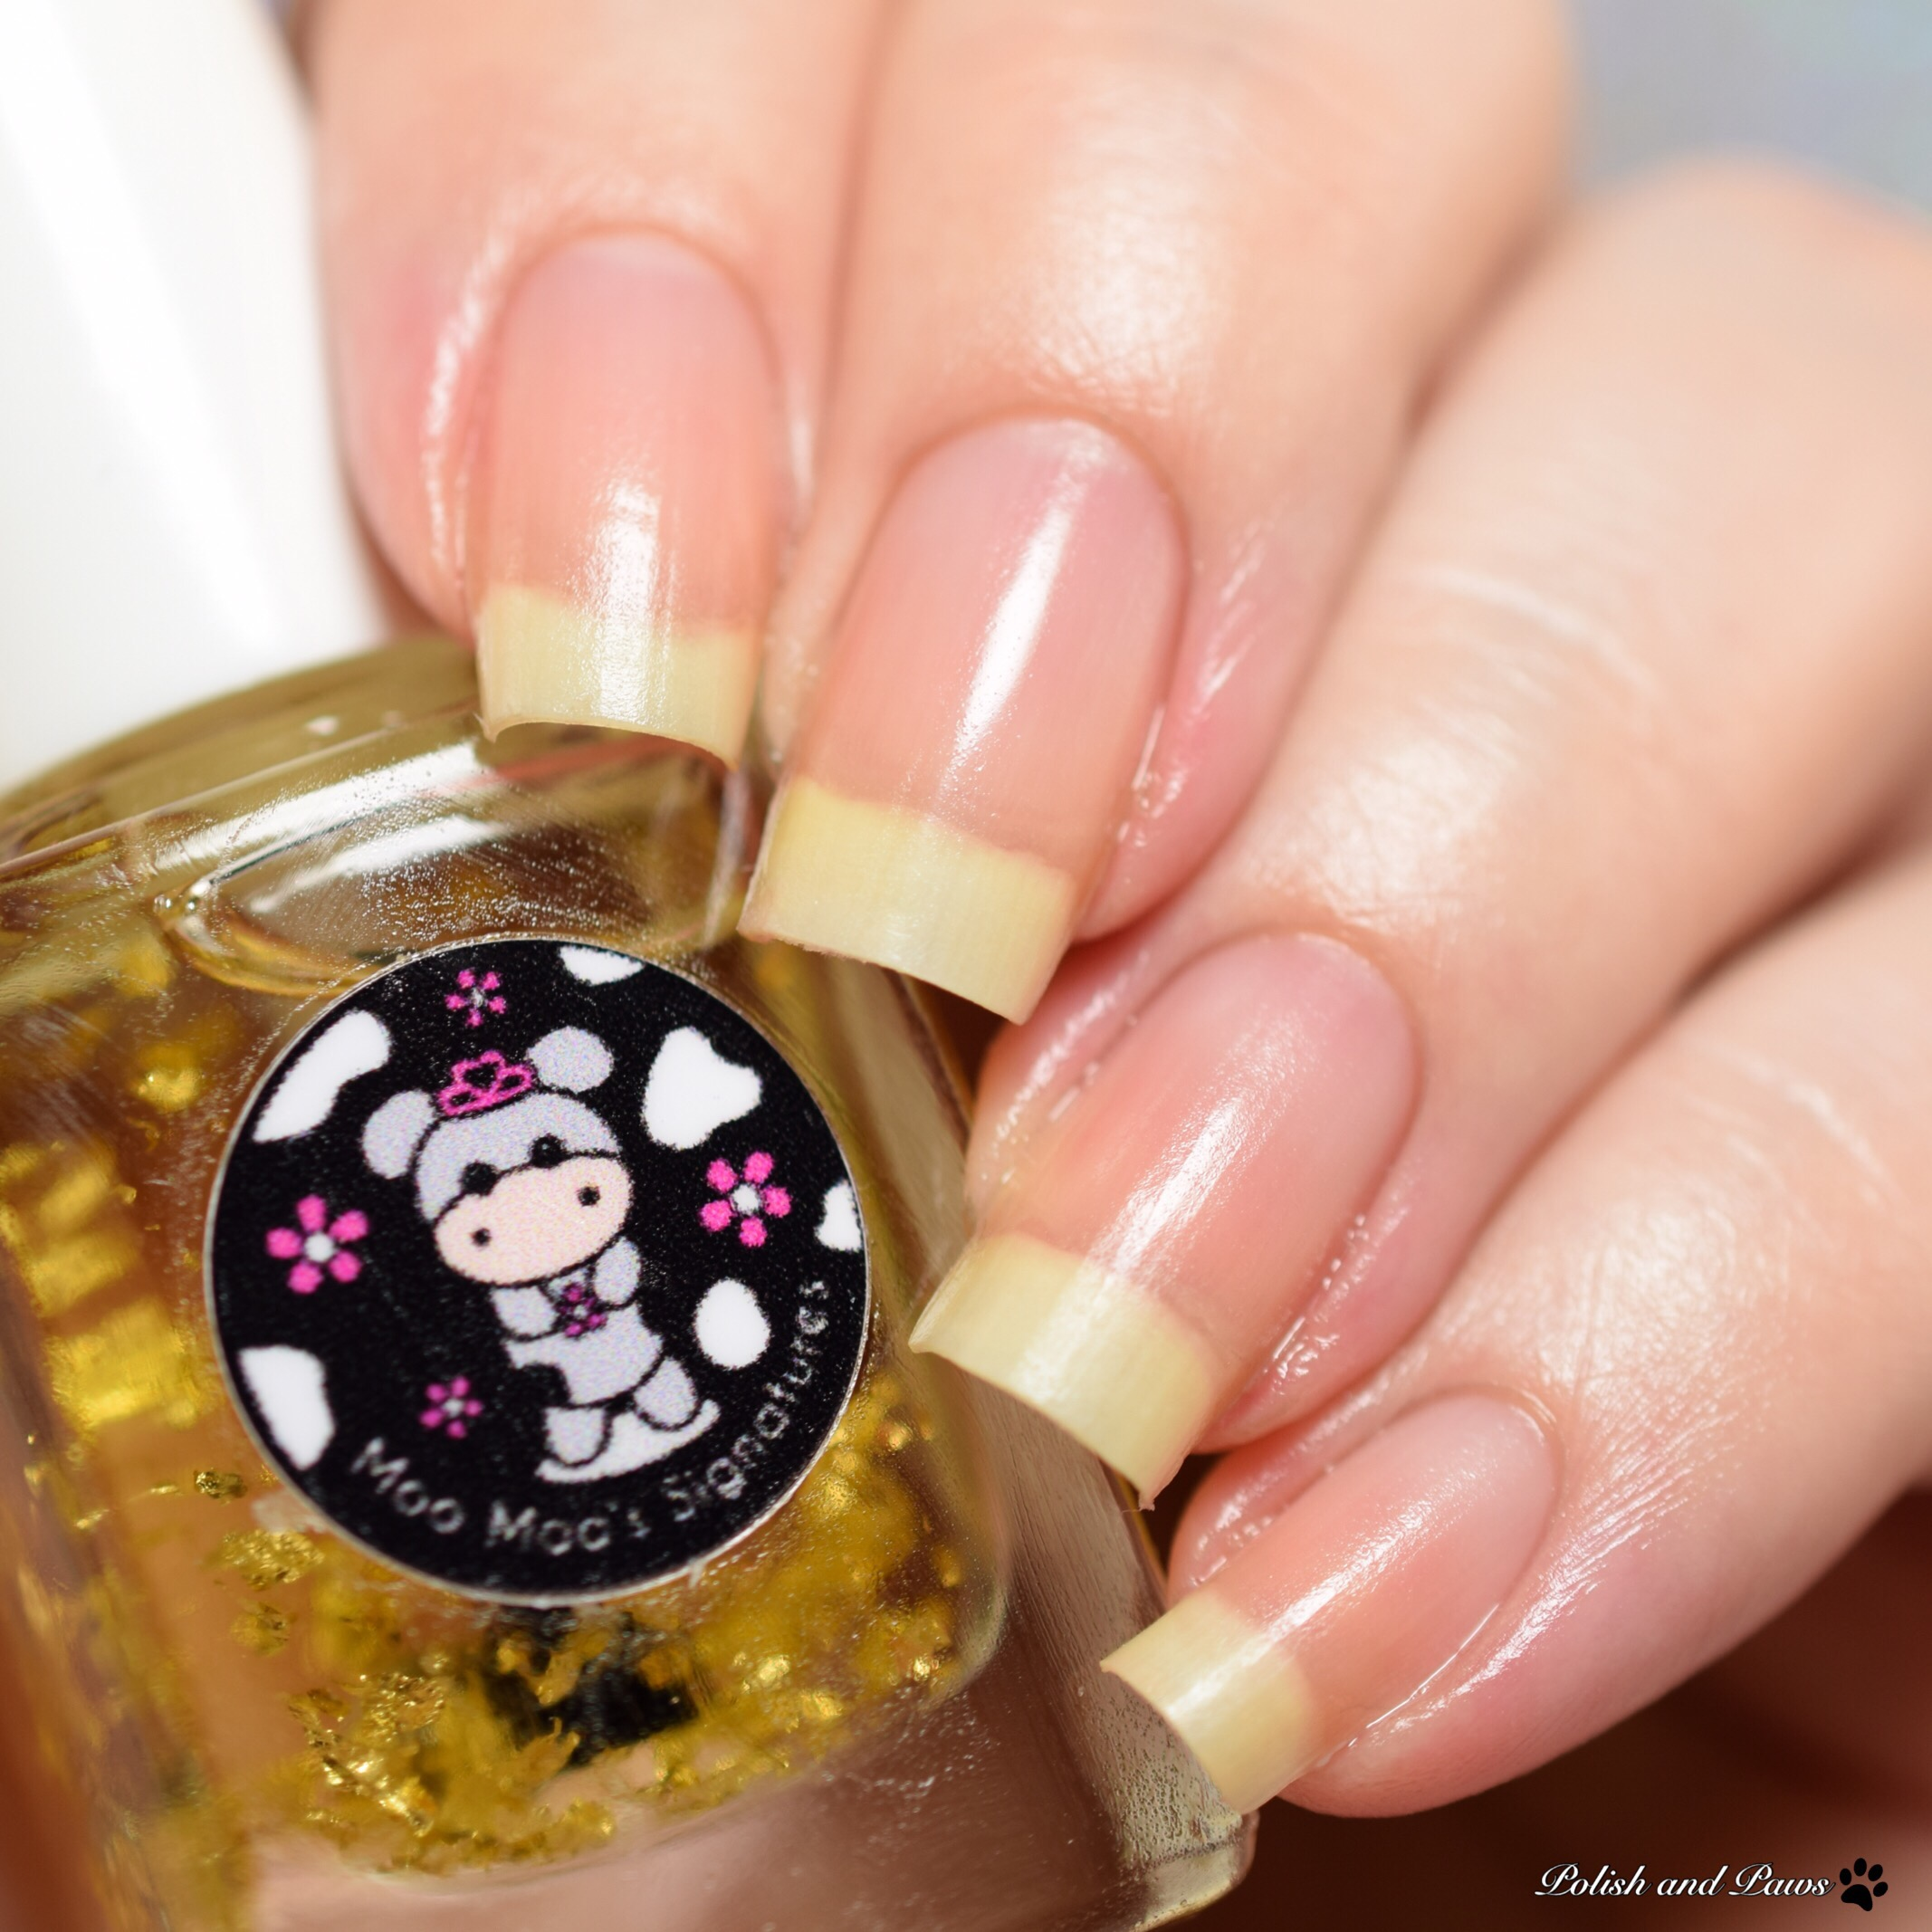 Moo Moo's Signatures 24k Gold Cuticle Oil